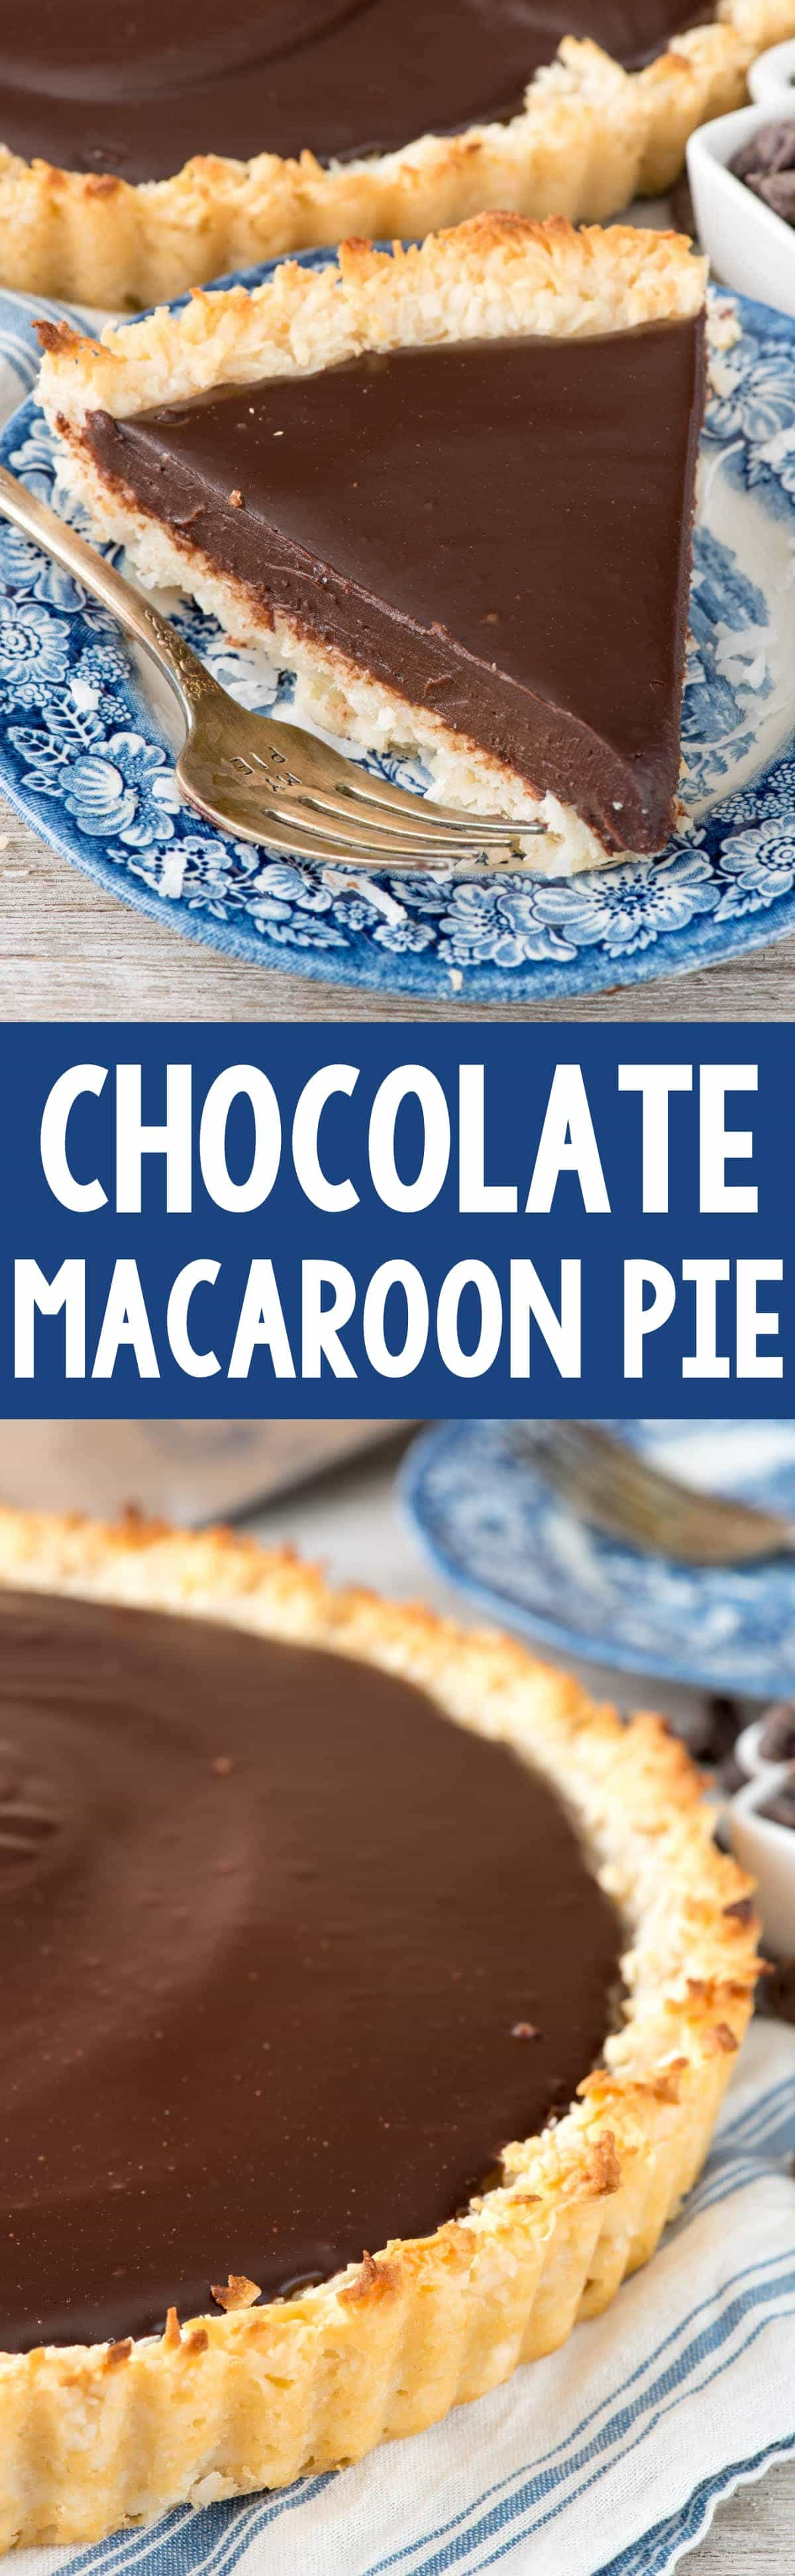 Chocolate Macaroon Pie - Crazy for Crust